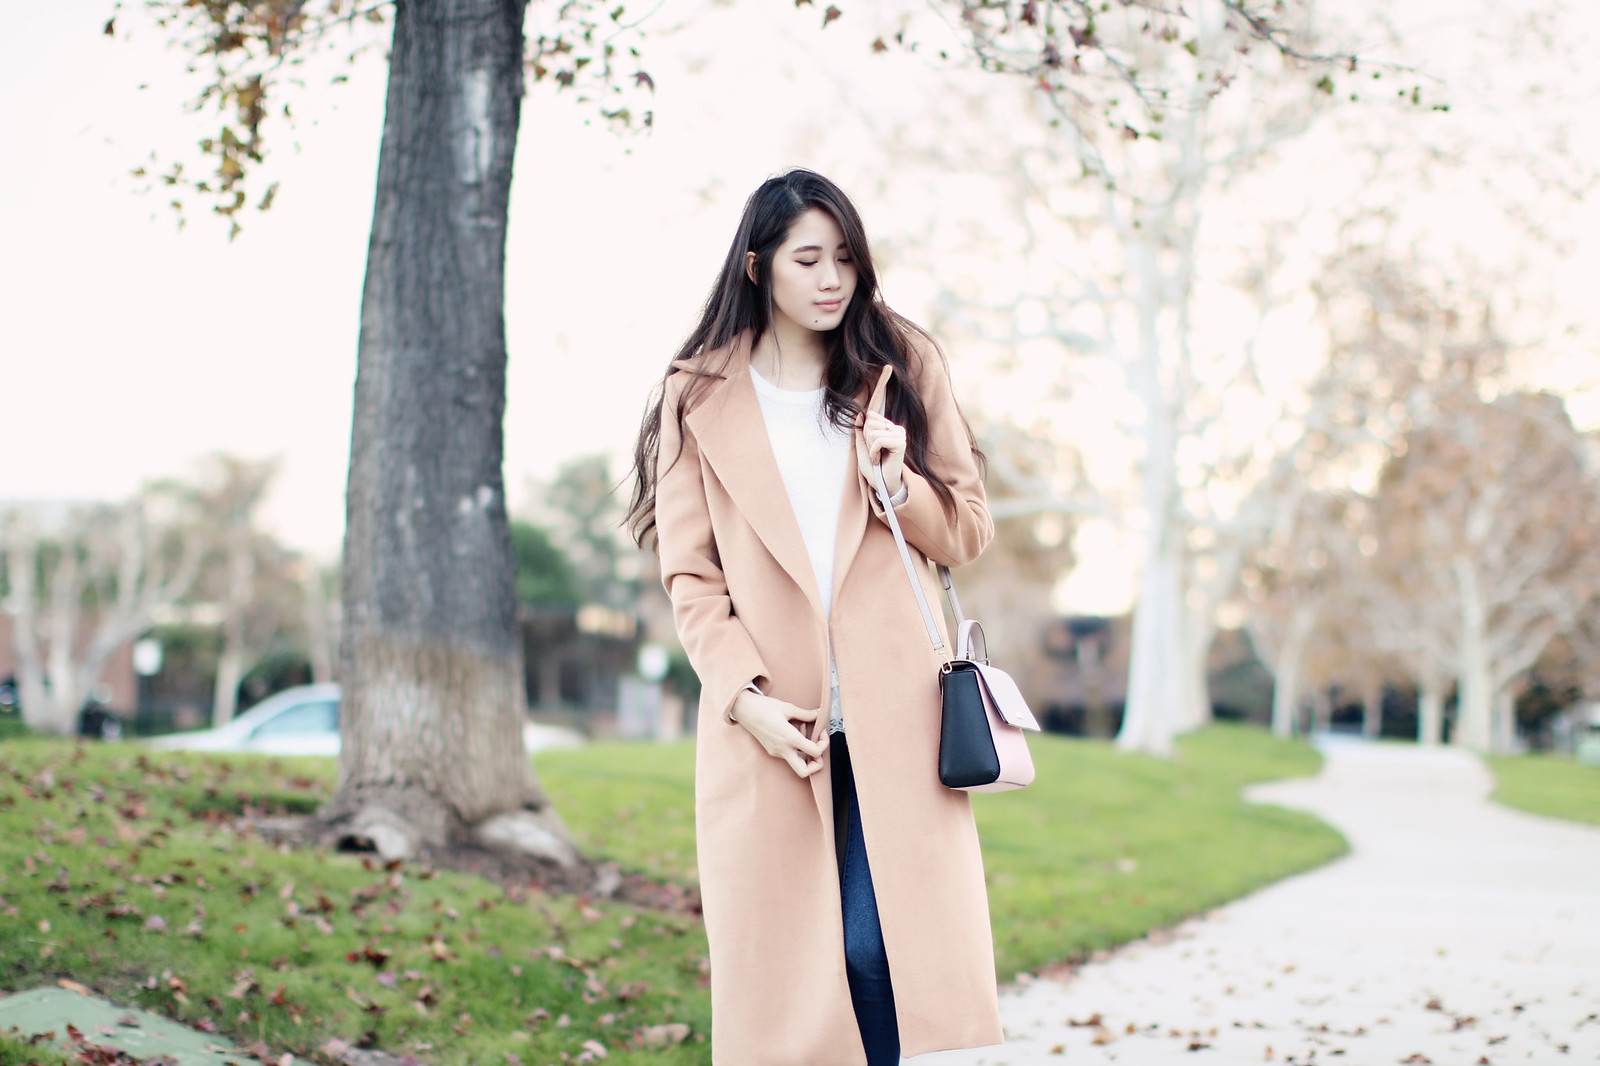 1421-ootd-fashion-fall-autumn-camel-coat-clothestoyouuu-elizabeeetht-chic-classic-timeless-koreanfashion